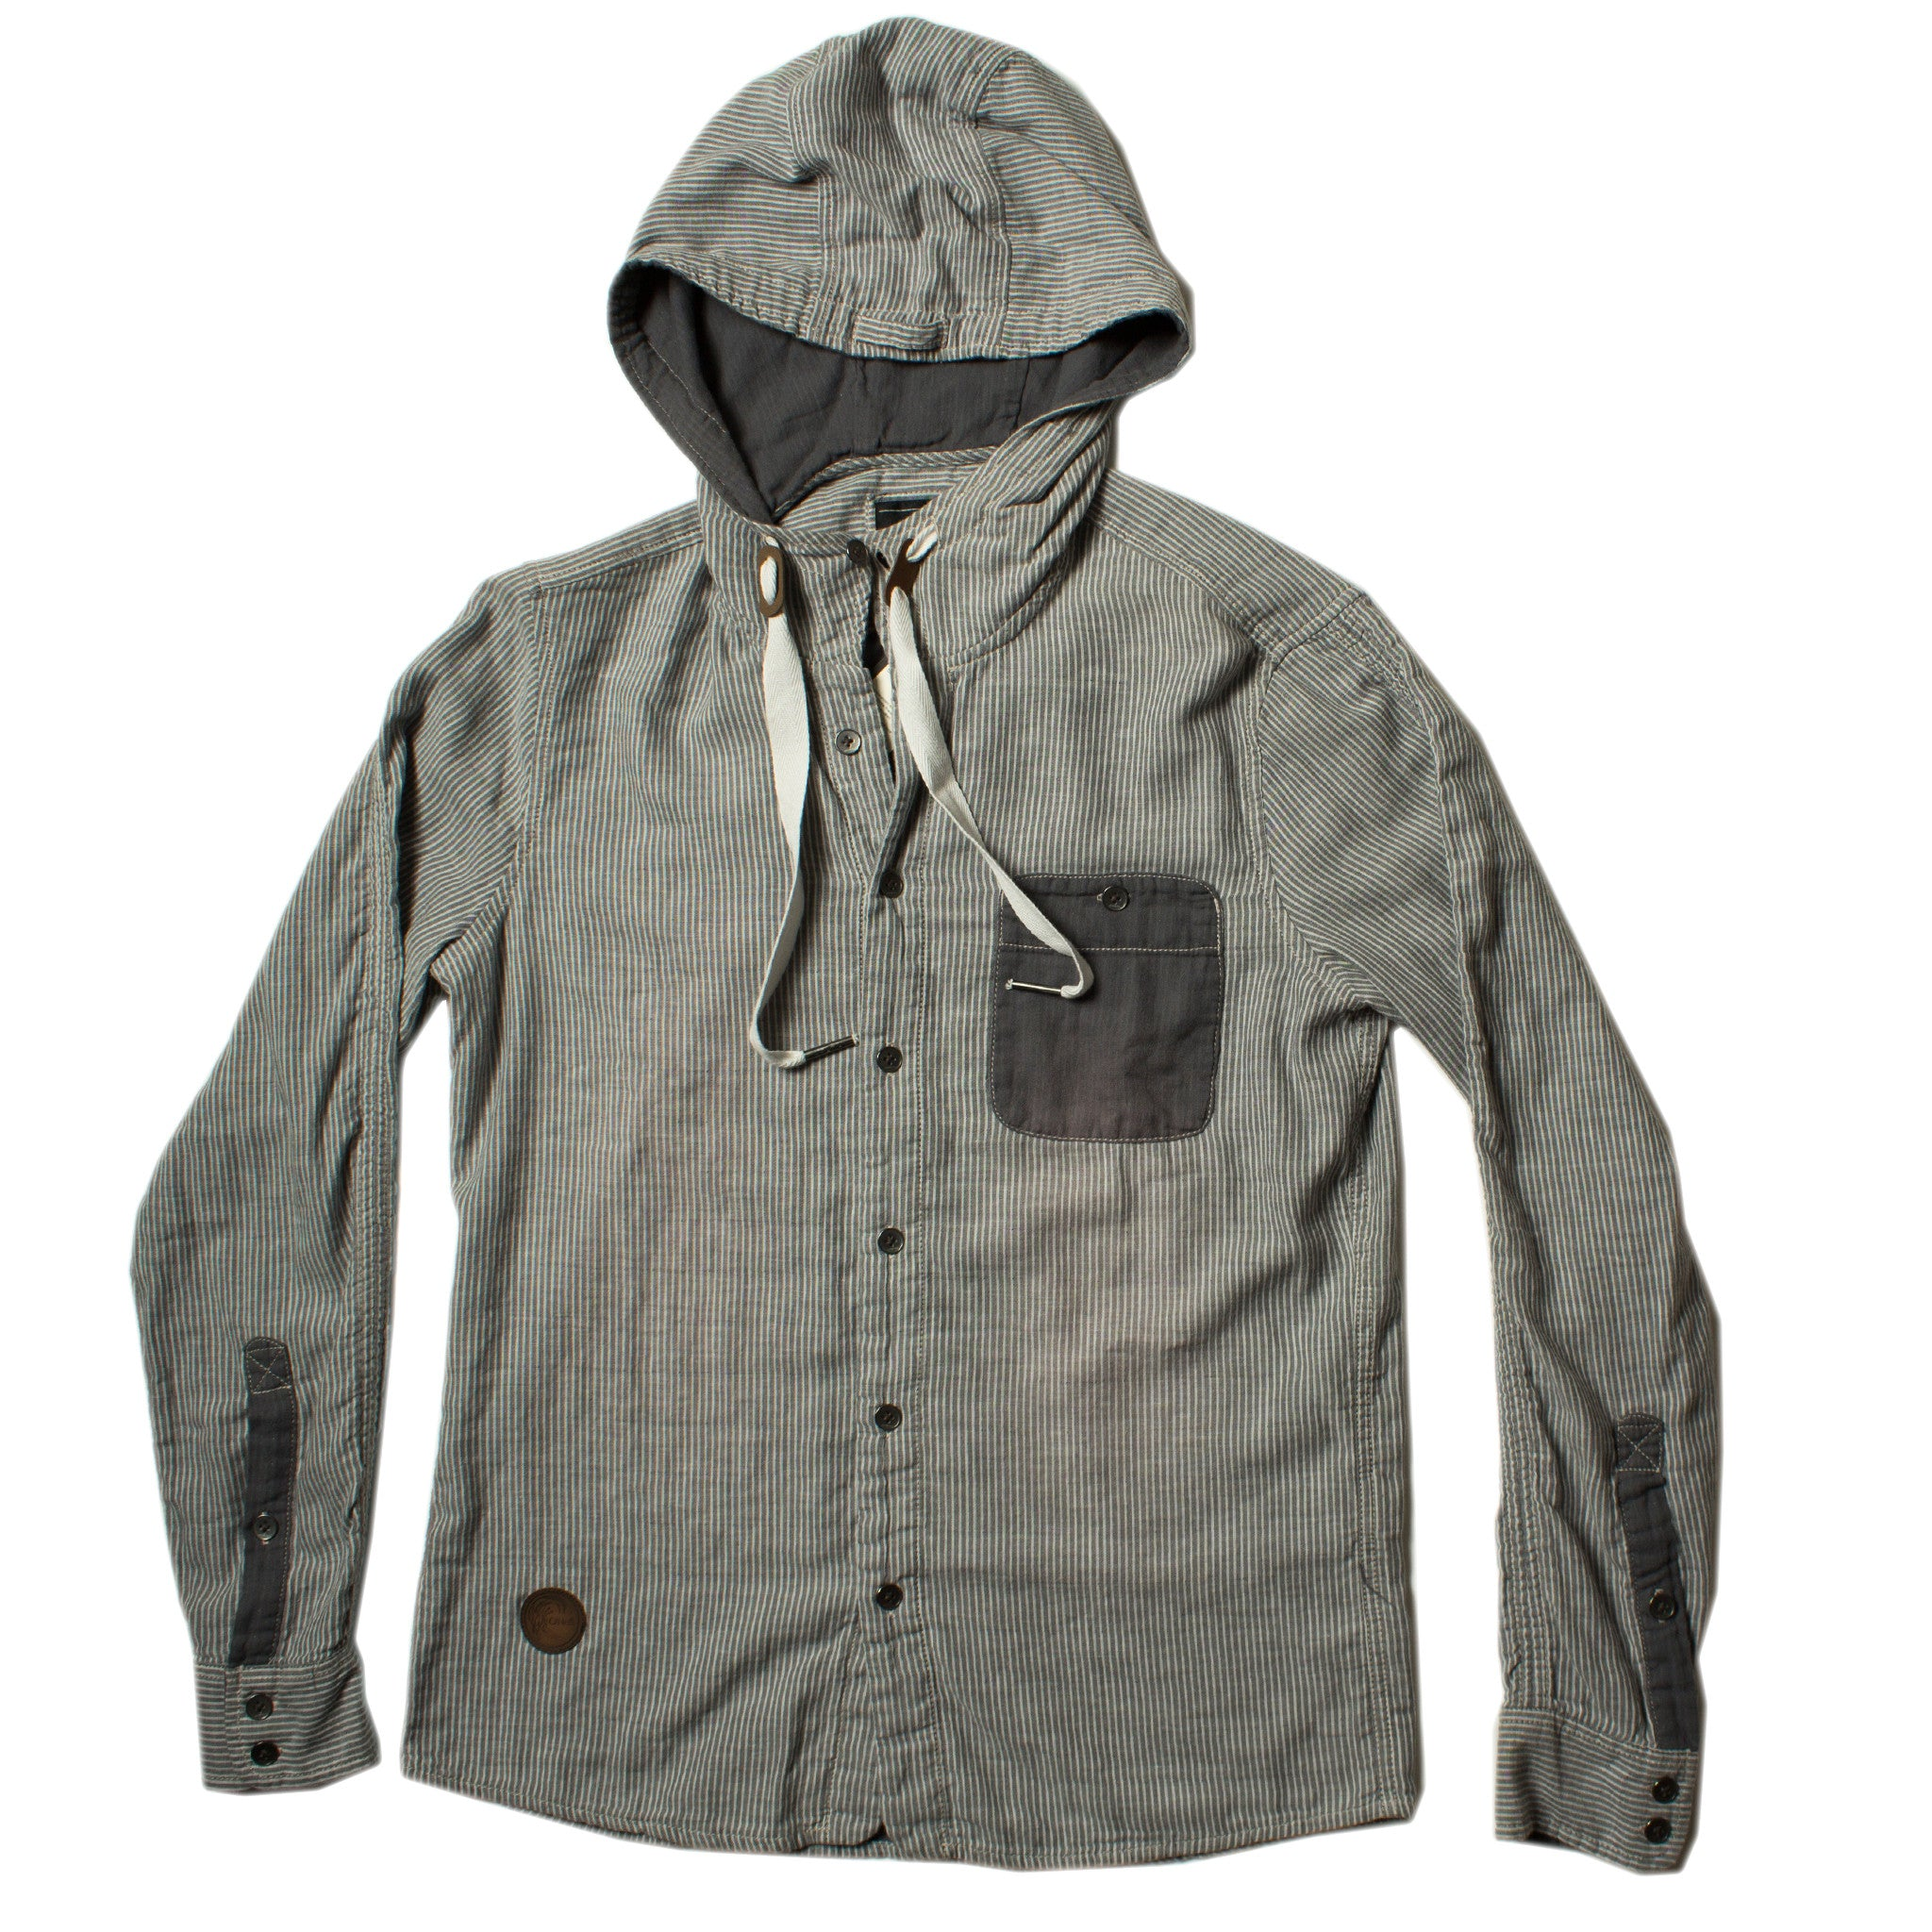 O'Riginals Marlin Shirt Grey - Stoked Boardshop  - 1